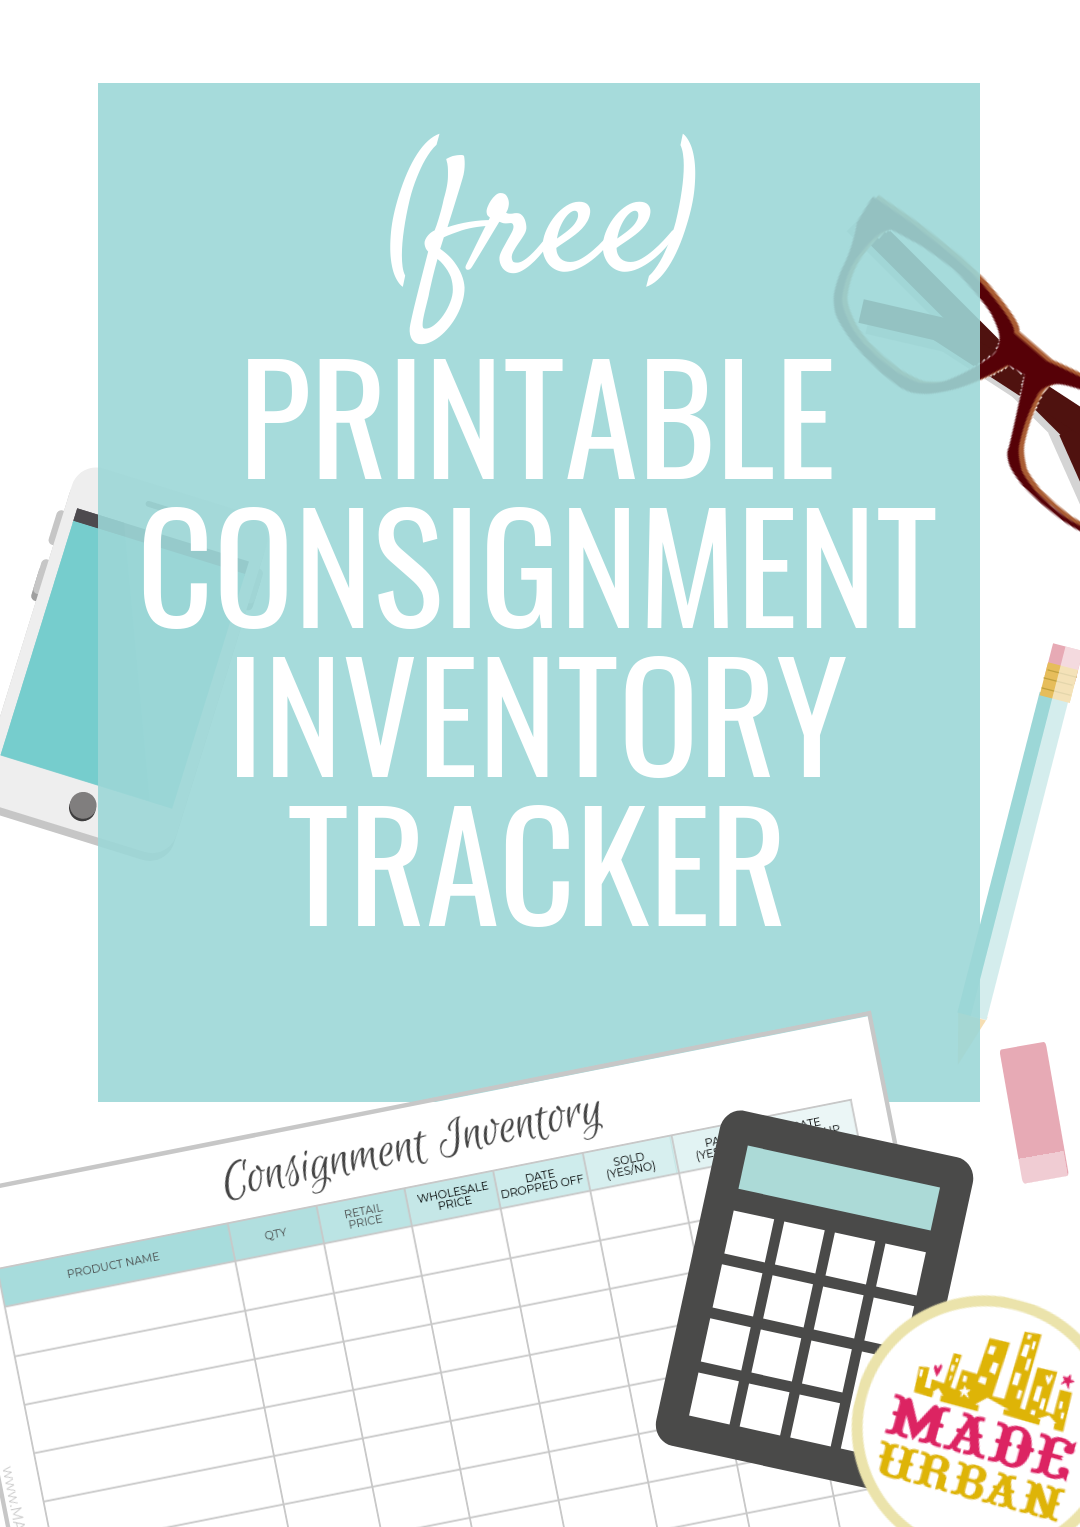 A free printable spreadsheet to keep track of your handmade product in consignment stores. Track when you drop off, get paid, etc.